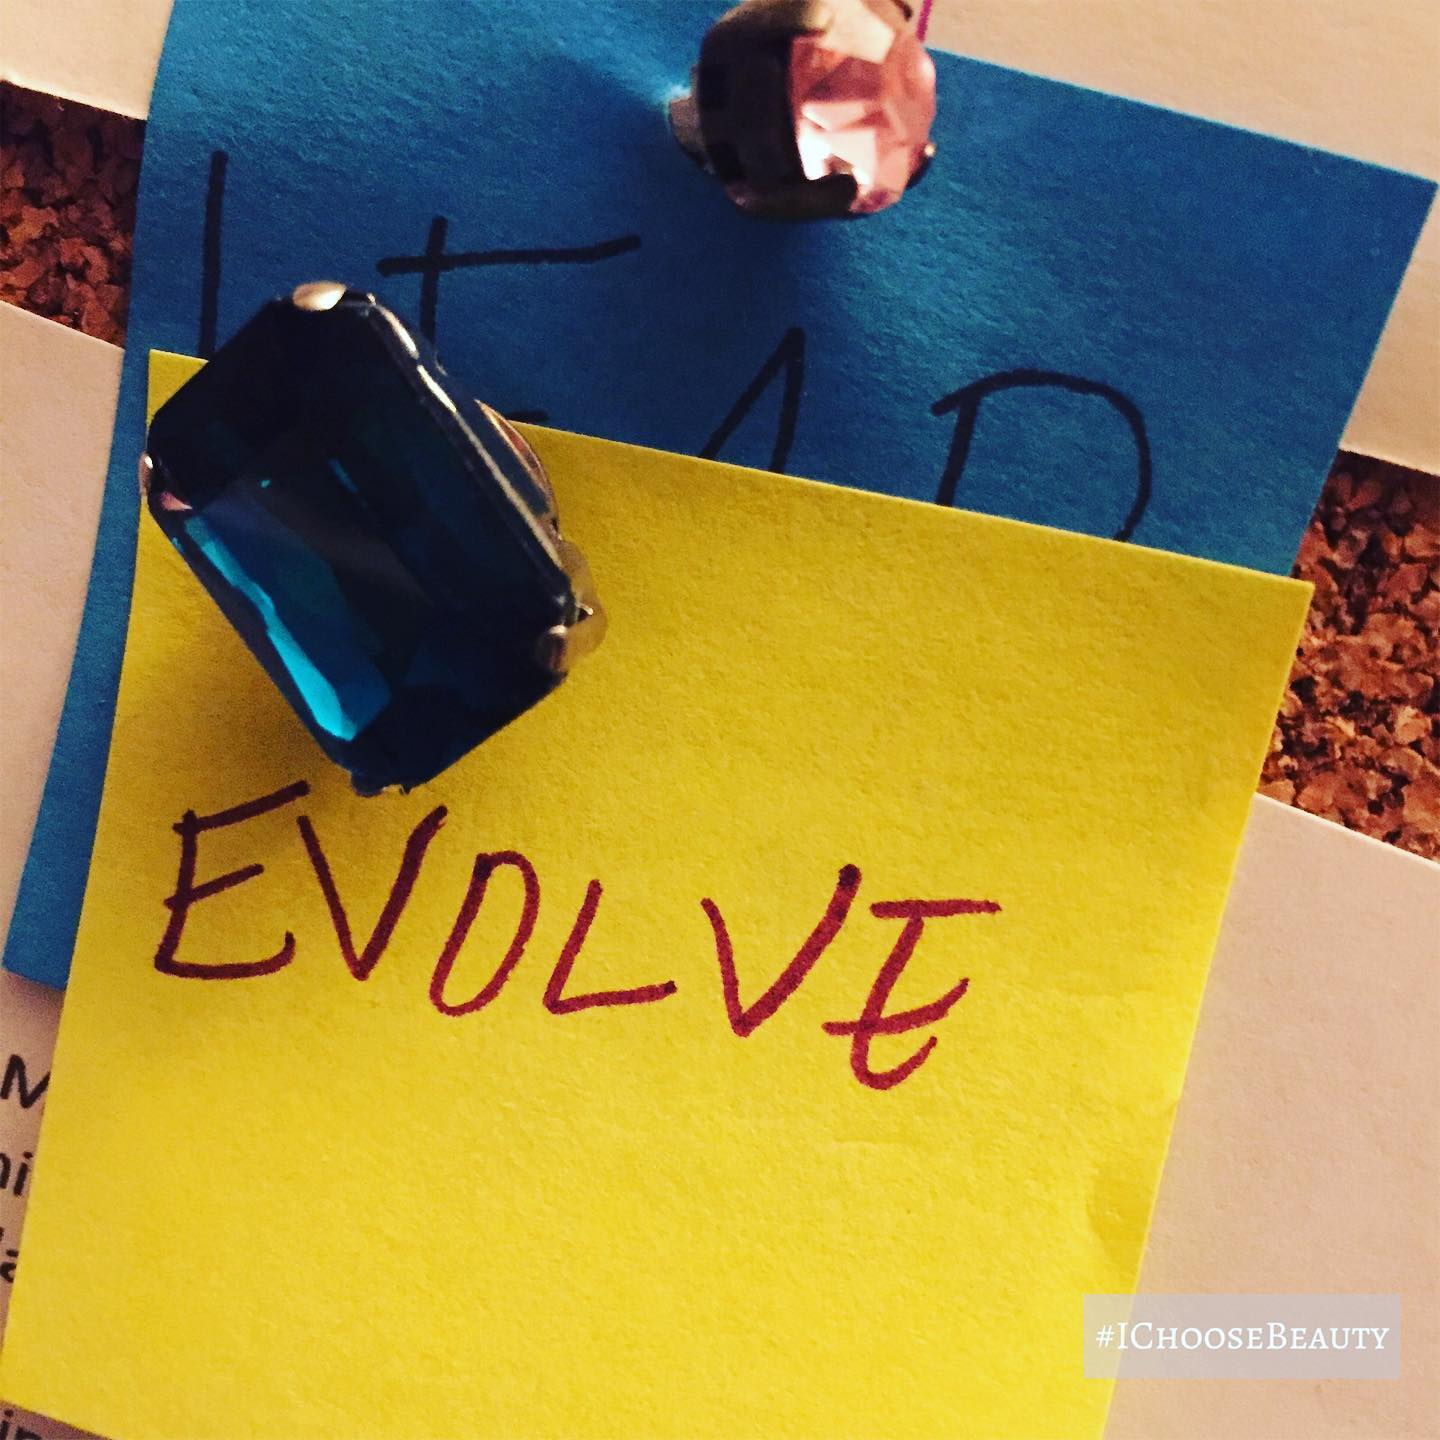 """How fitting is it that """"evolve"""" was what I chose months ago as my word for the year? #ichoosebeauty Day 2428"""